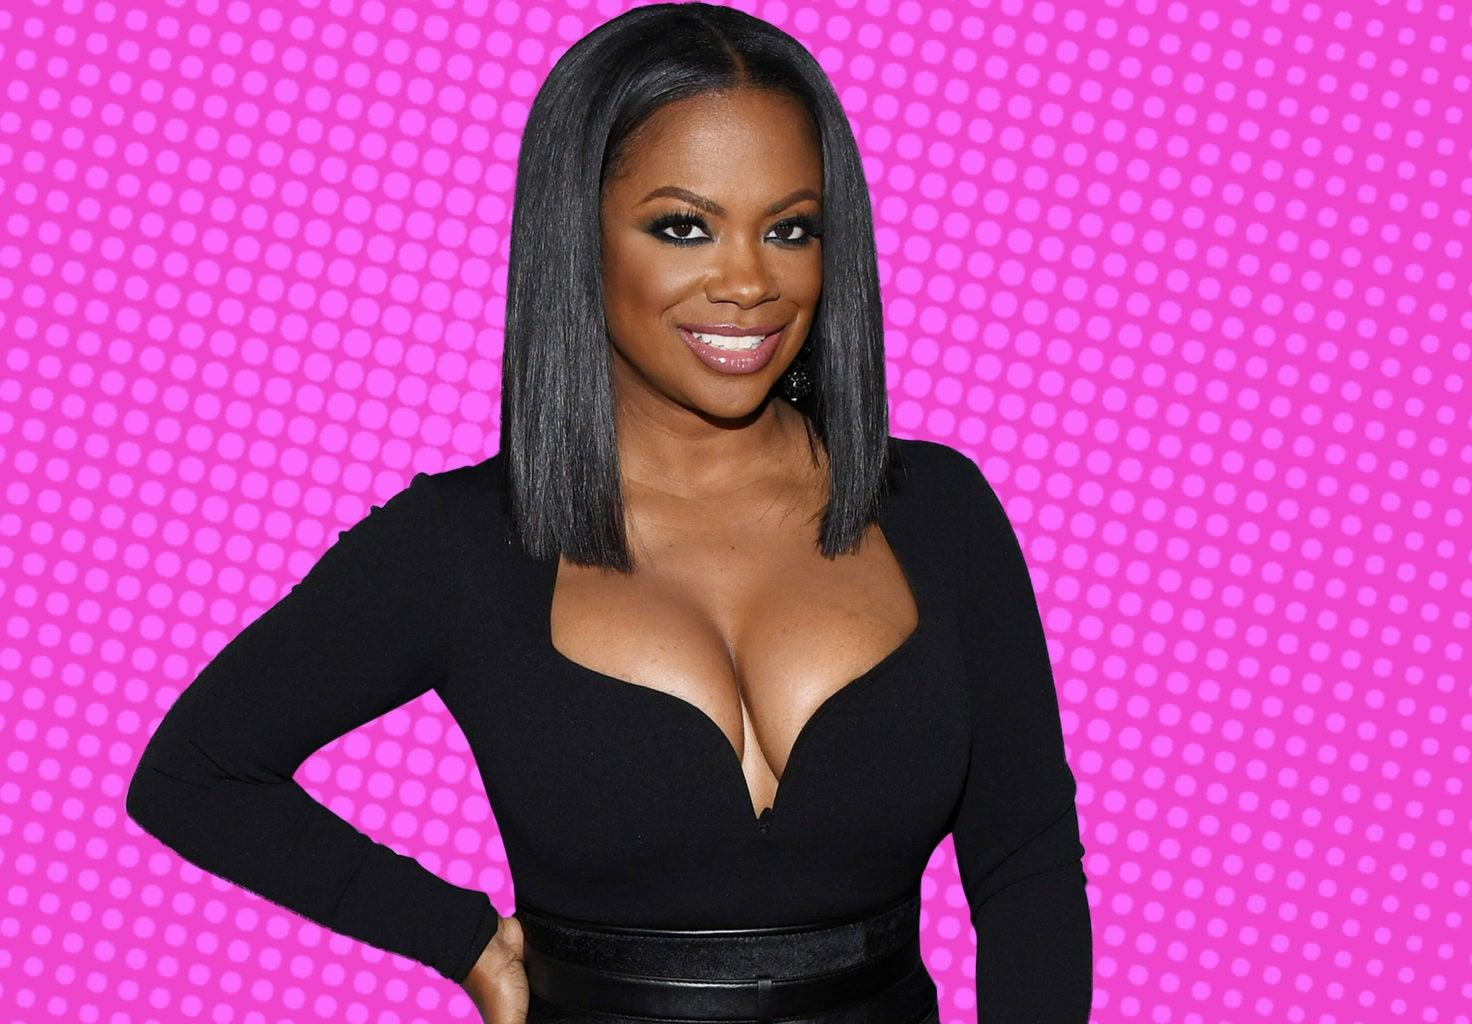 Kandi Burruss Celebrates Reaching 8 Million Followers On IG With A Hilarious Video Of Her Twerking On The Kitchen Counter!